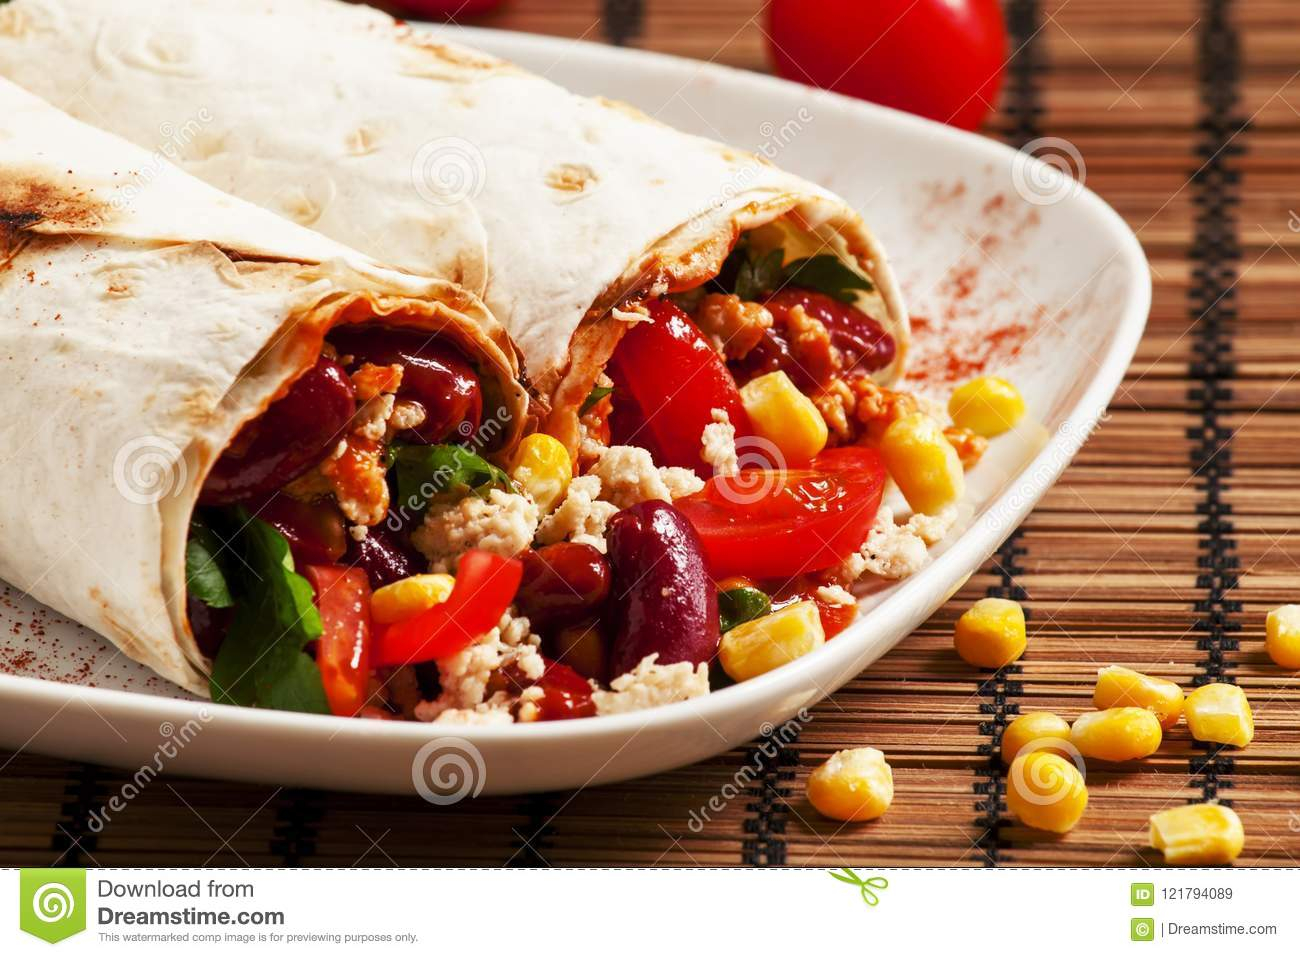 Traditional Mexican food, burritos with meat and beans, selective focus